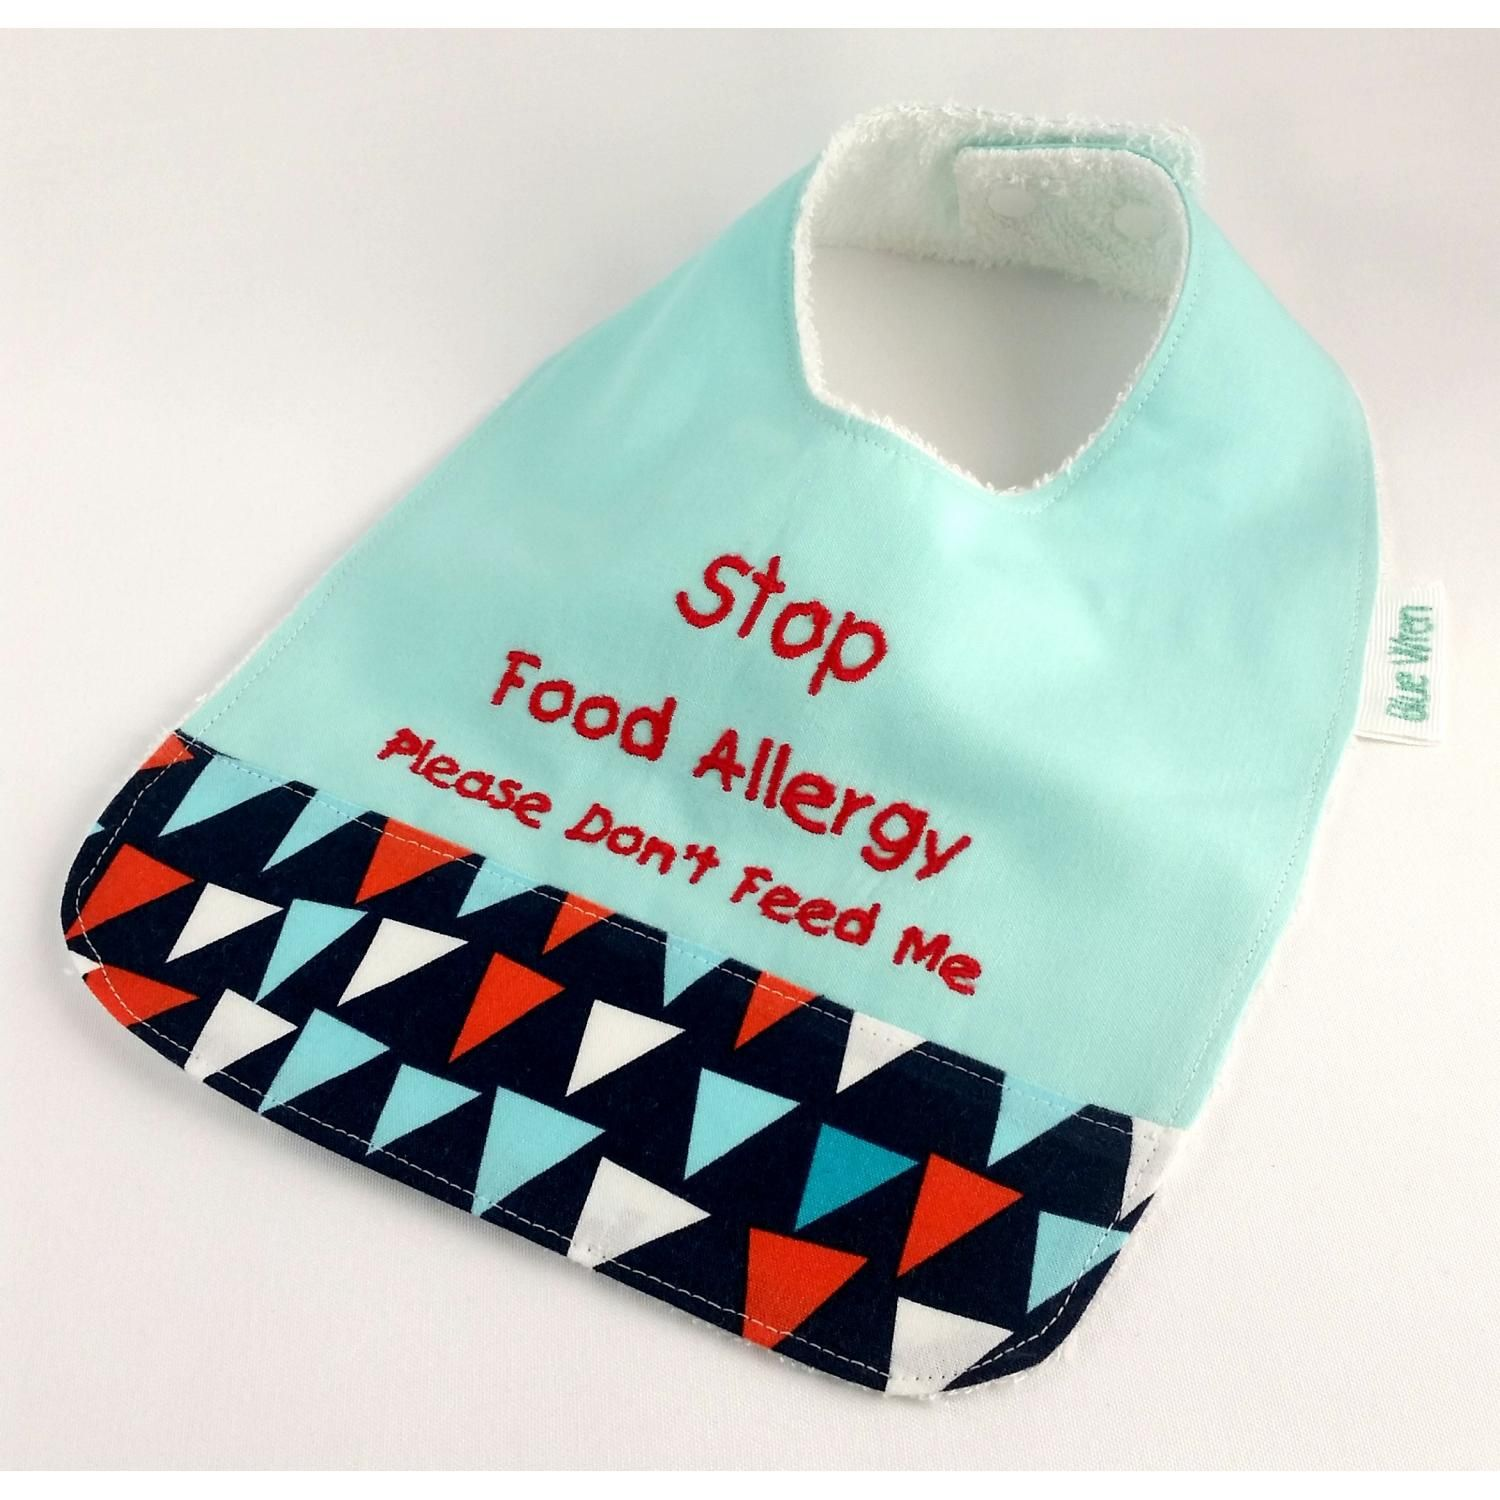 This allergy alert bib could help to save your babys